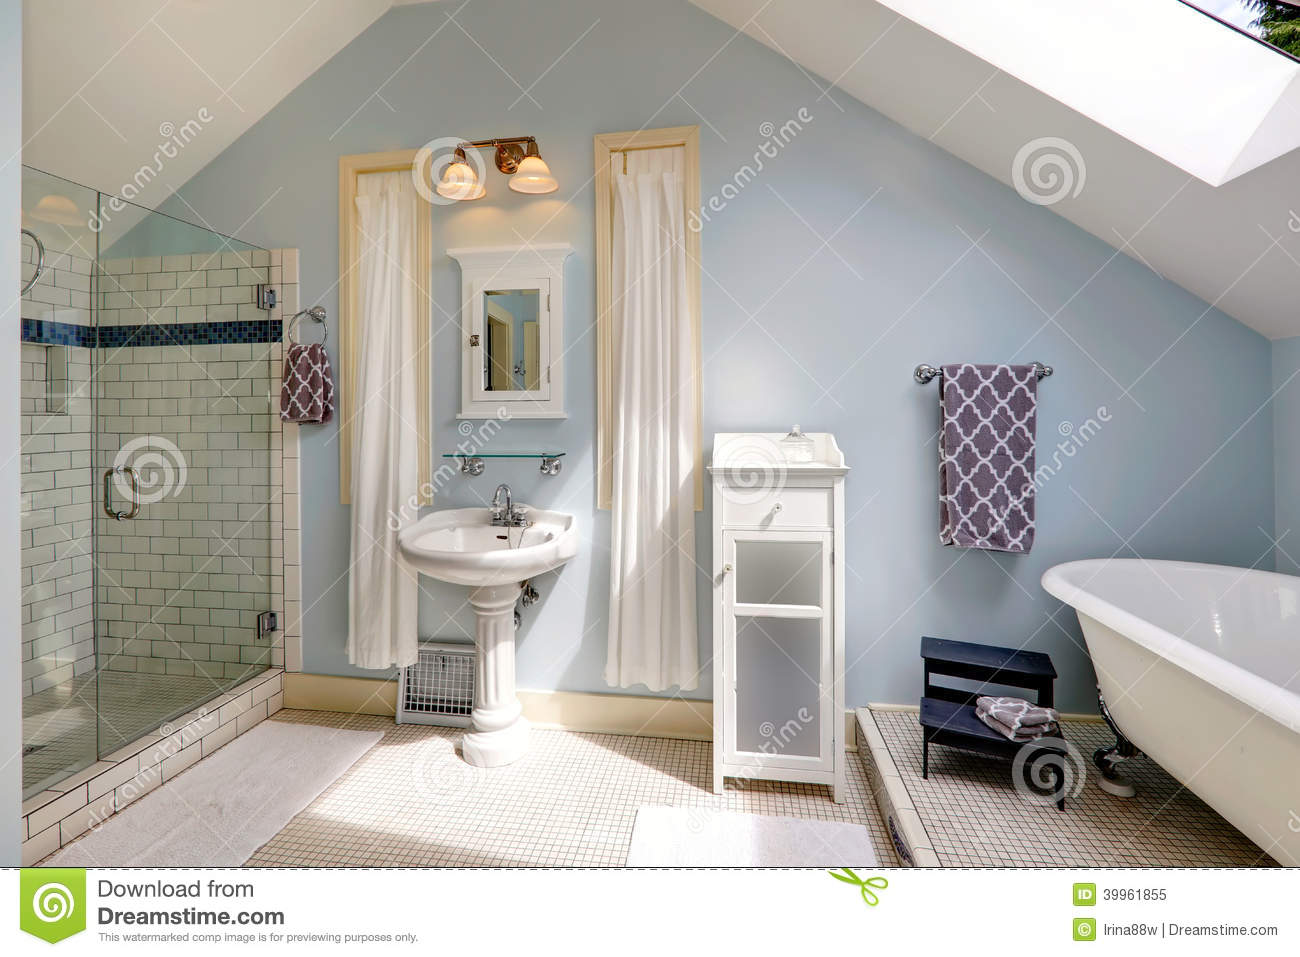 salle de bains de velux avec la baignoire antique photo stock image 39961855. Black Bedroom Furniture Sets. Home Design Ideas